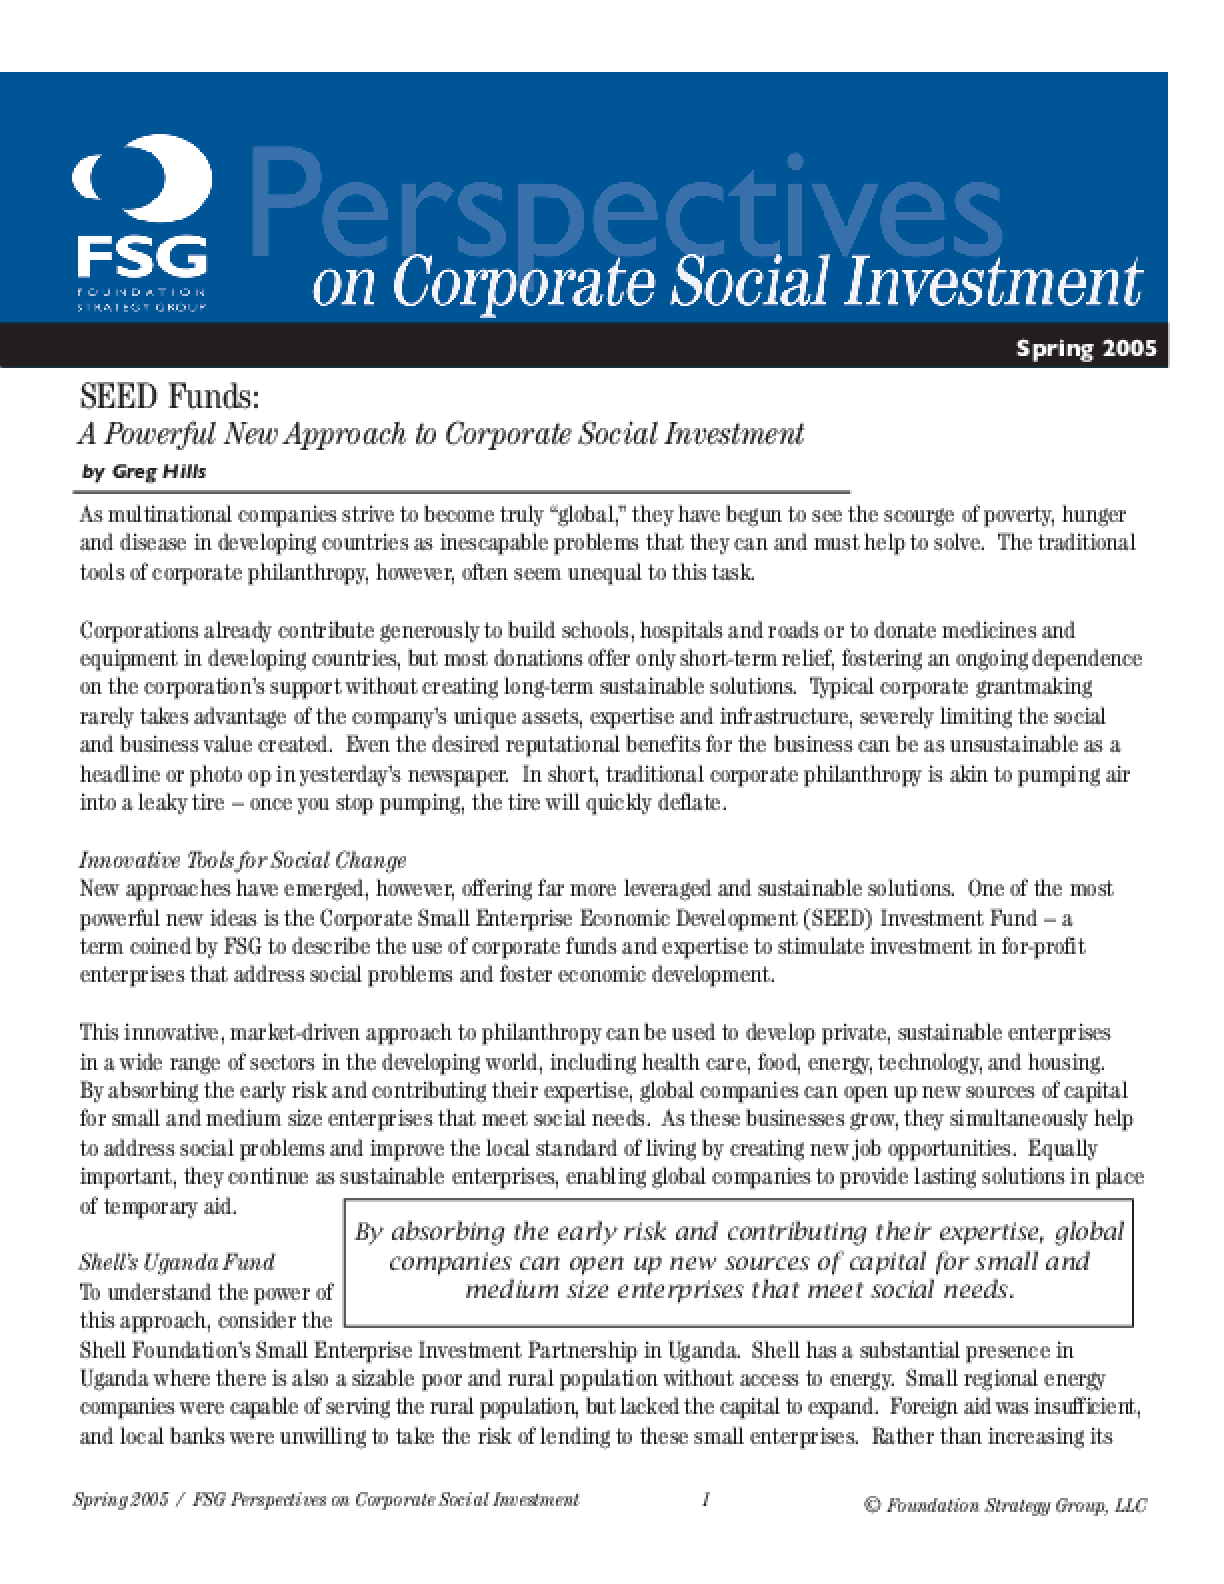 SEED Funds - A Powerful New Approach to Corporate Social Investment